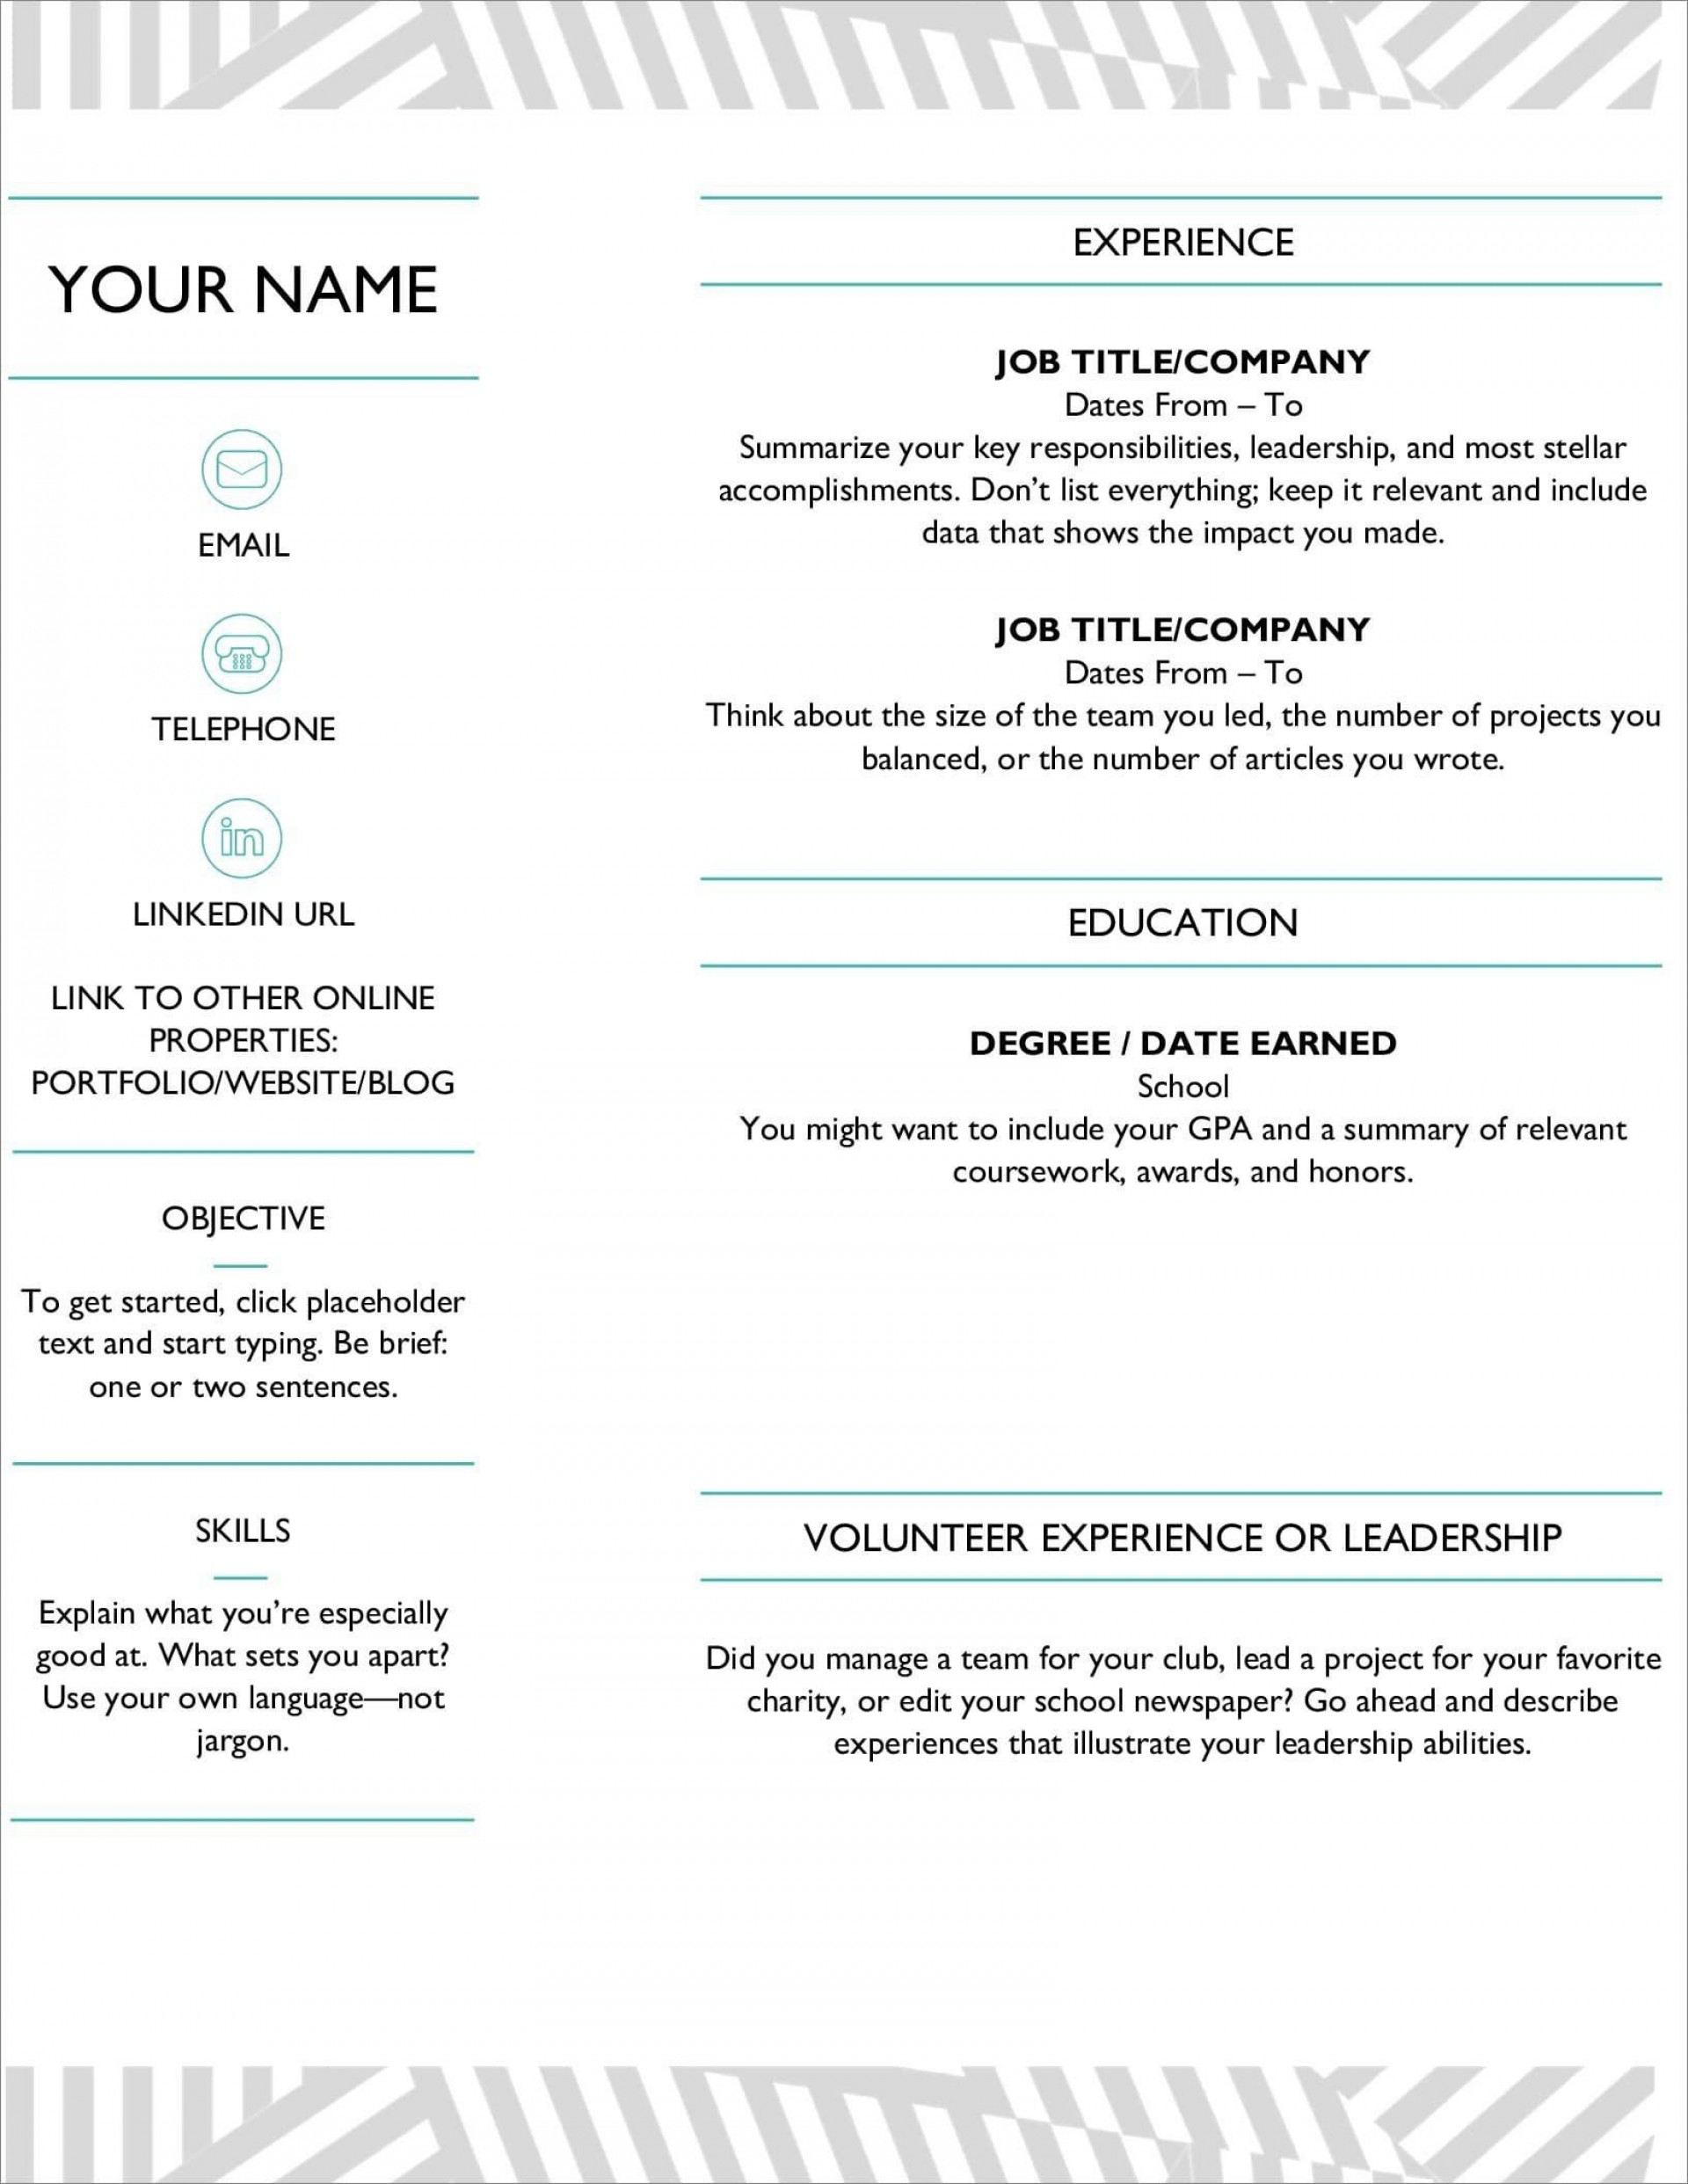 009 Fascinating Entry Level Resume Template Word Download Sample 1920